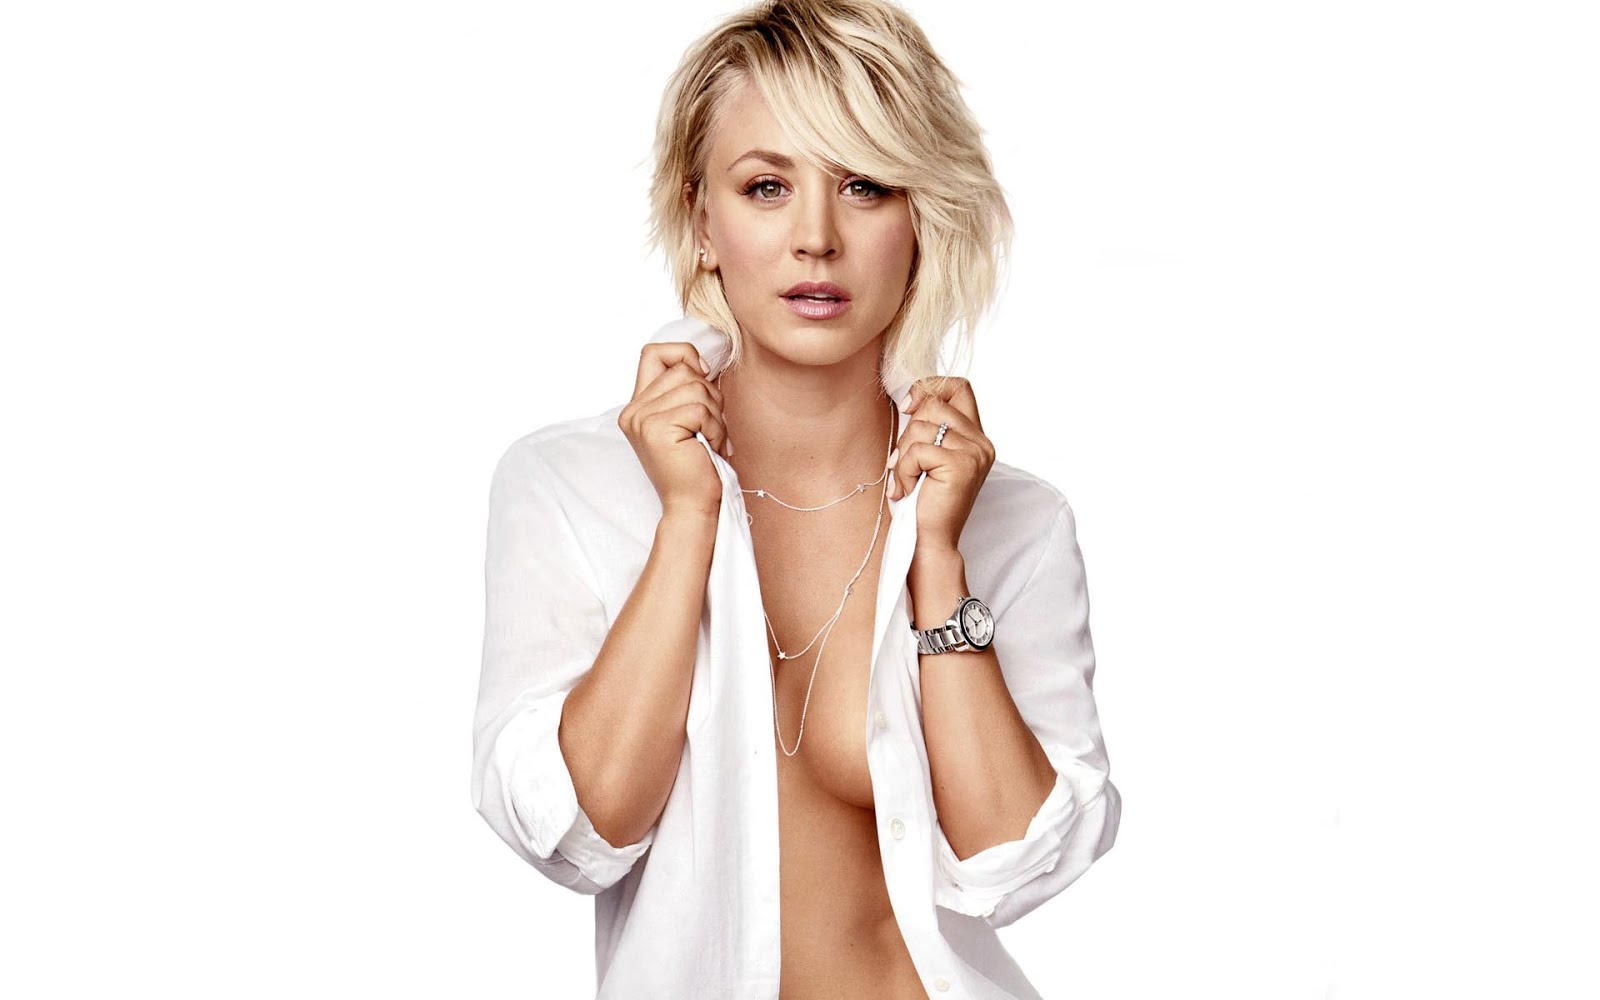 braless Snapchat Kaley Cuoco naked photo 2017